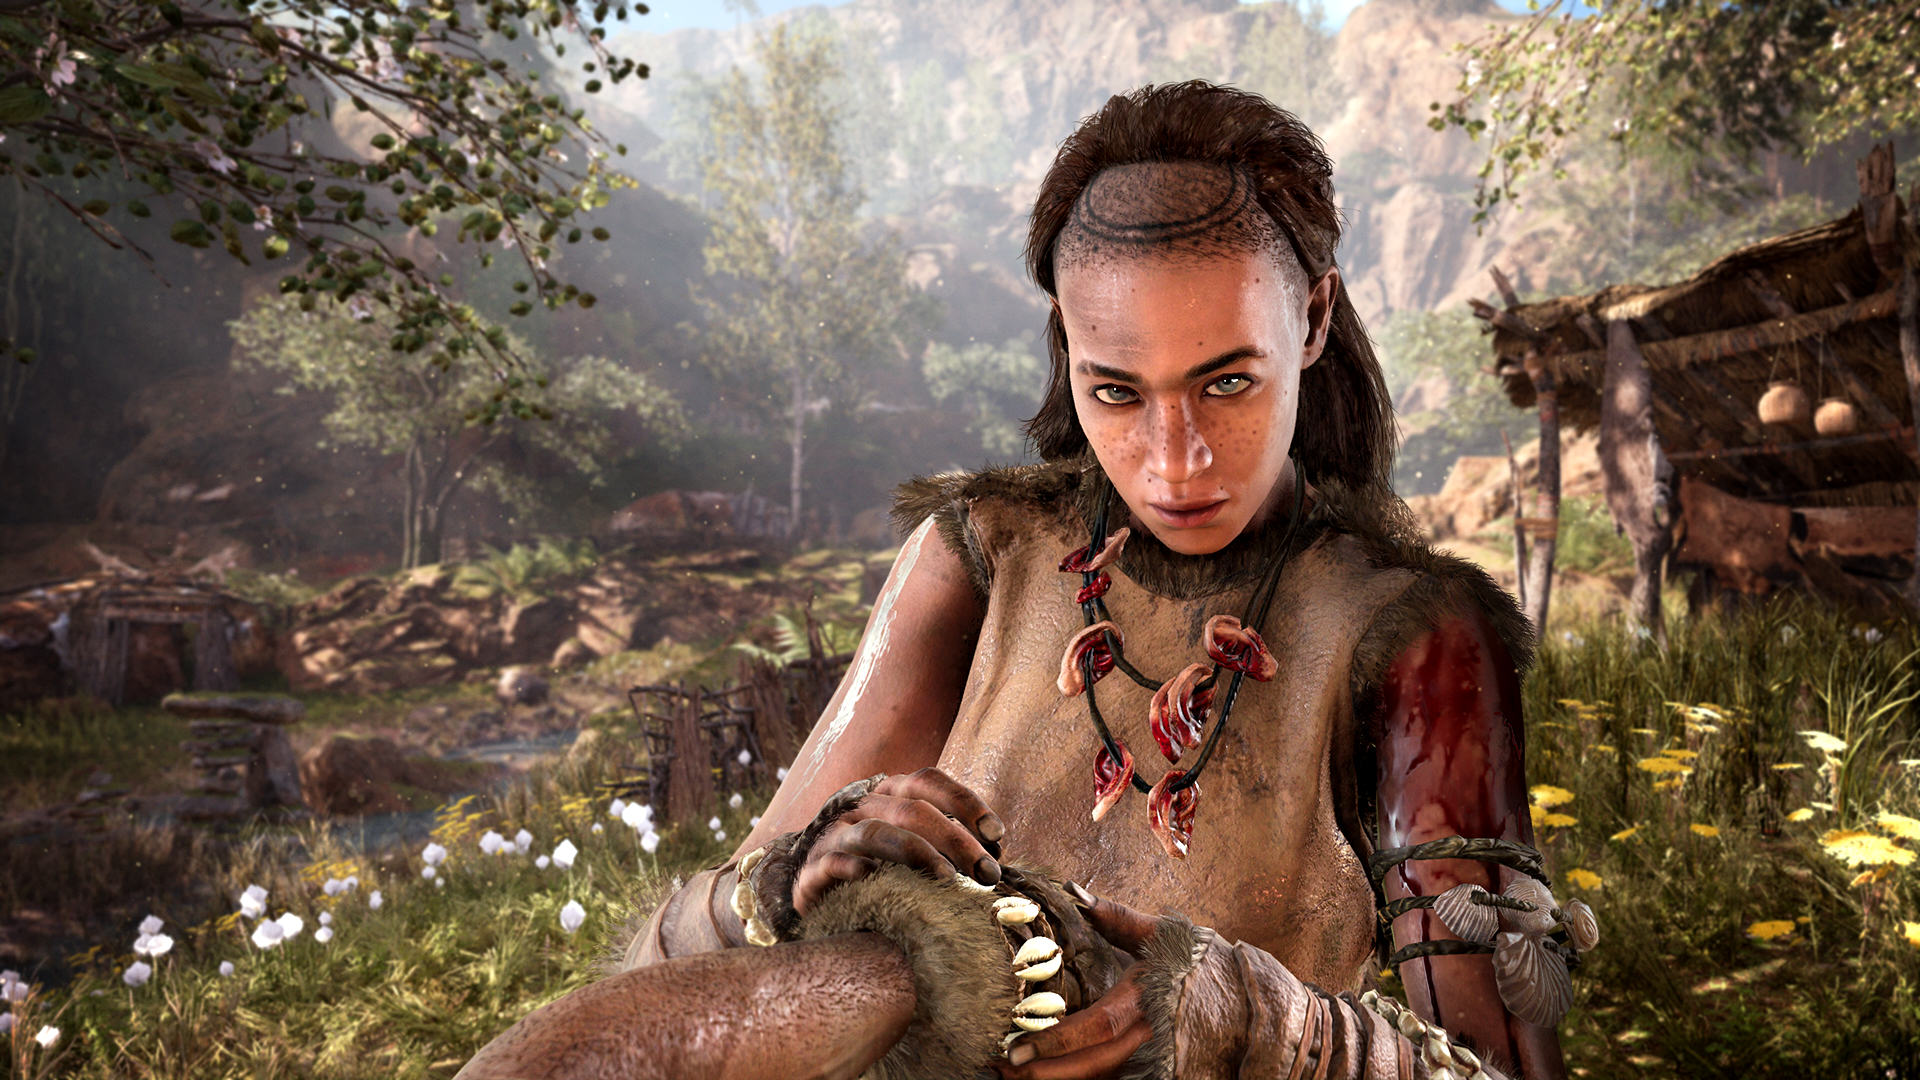 Far Cry Primal Is Shameless Pre Historic Fun, If A Little Shallow FCP 02 Gatherer Screenshots PREVIEW PR 160126 6pm CET 1453716678